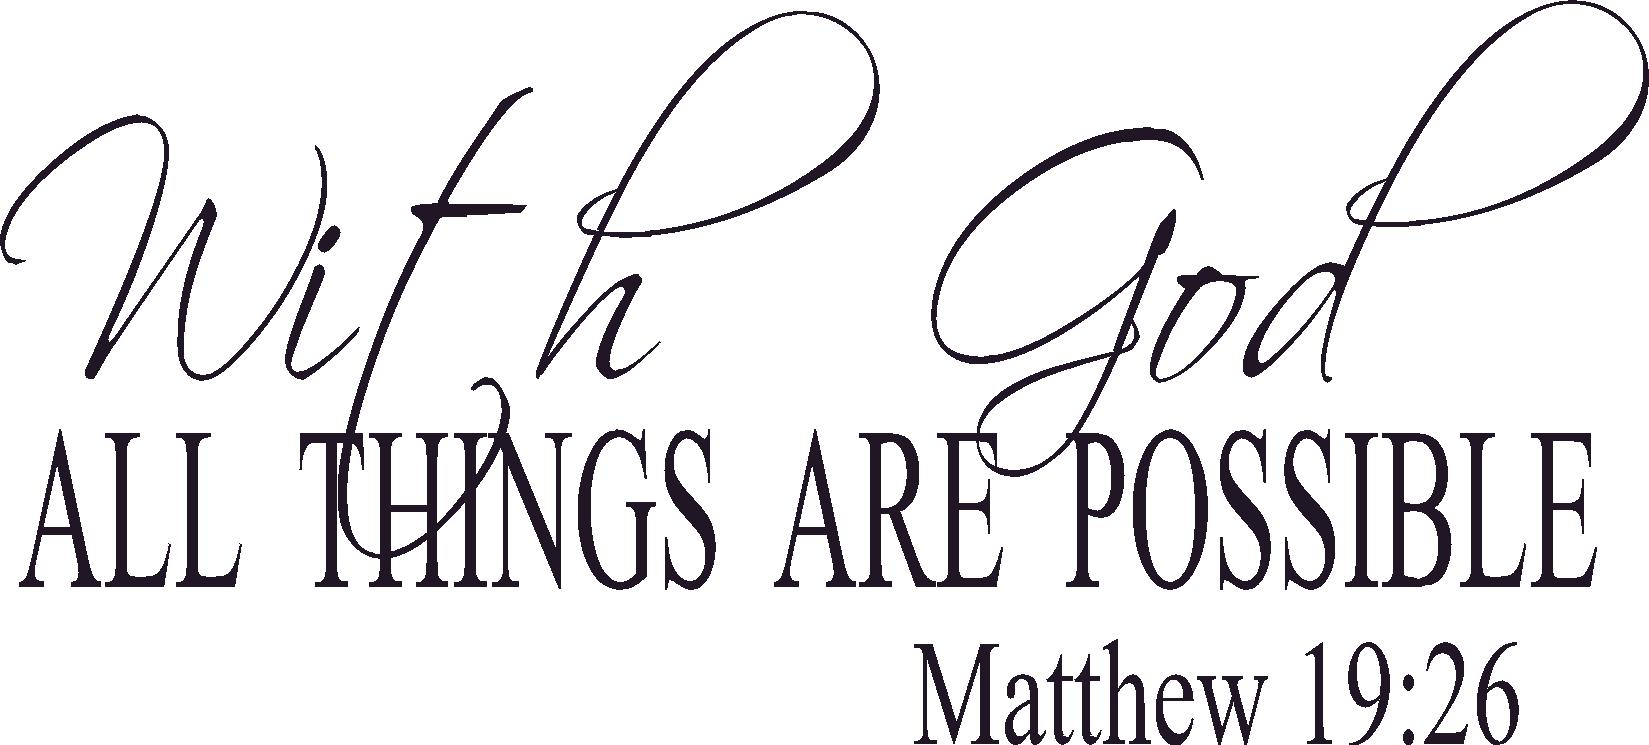 Matthew 19:26 Inspirational Wall Art